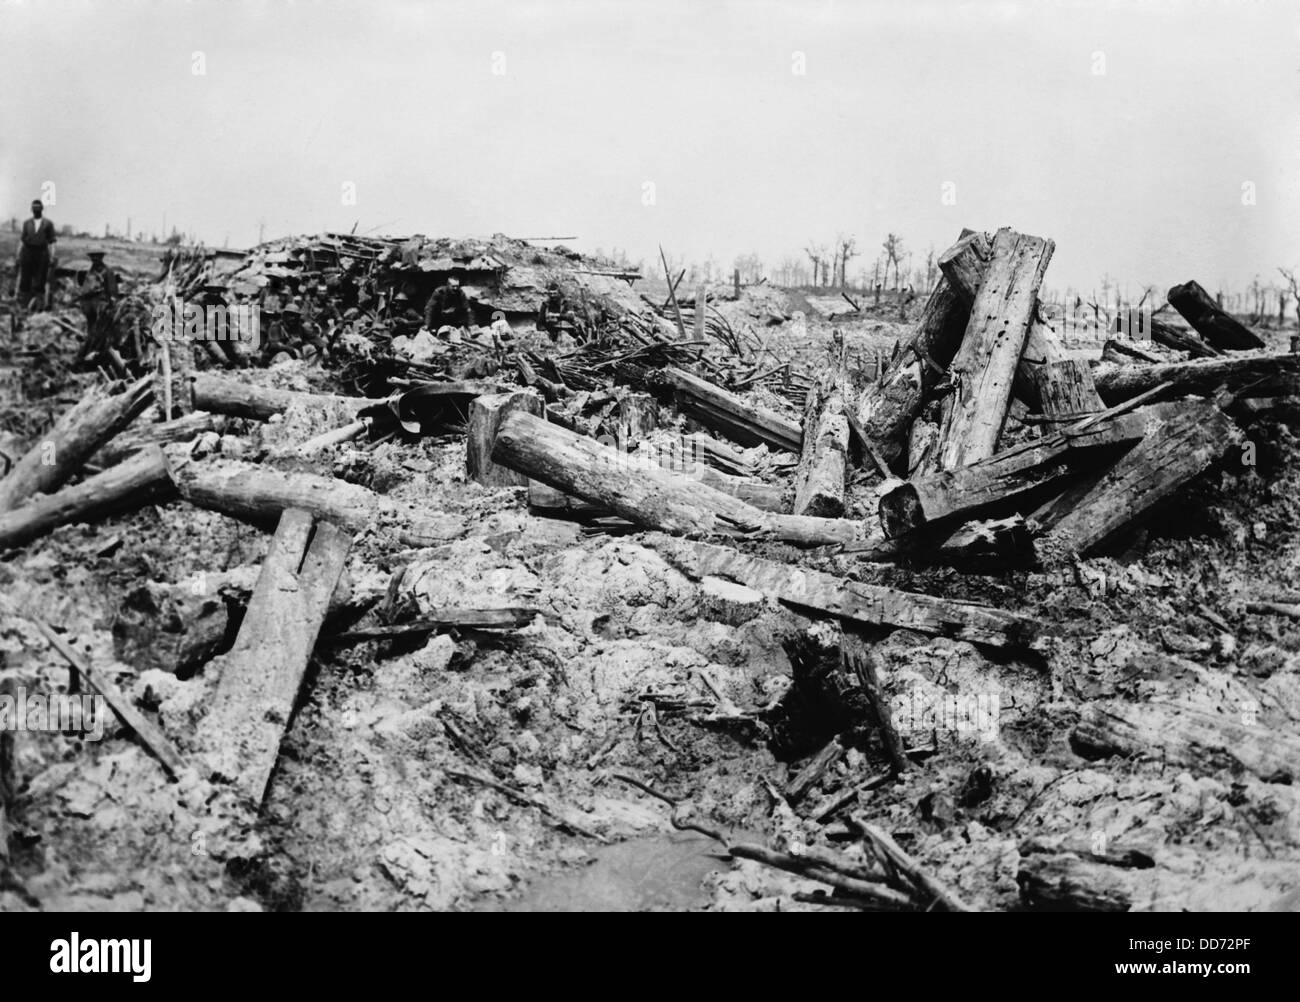 World War 1. German trenches churned by British artillery shells. Big guns and massive shells turned the battlefields - Stock Image